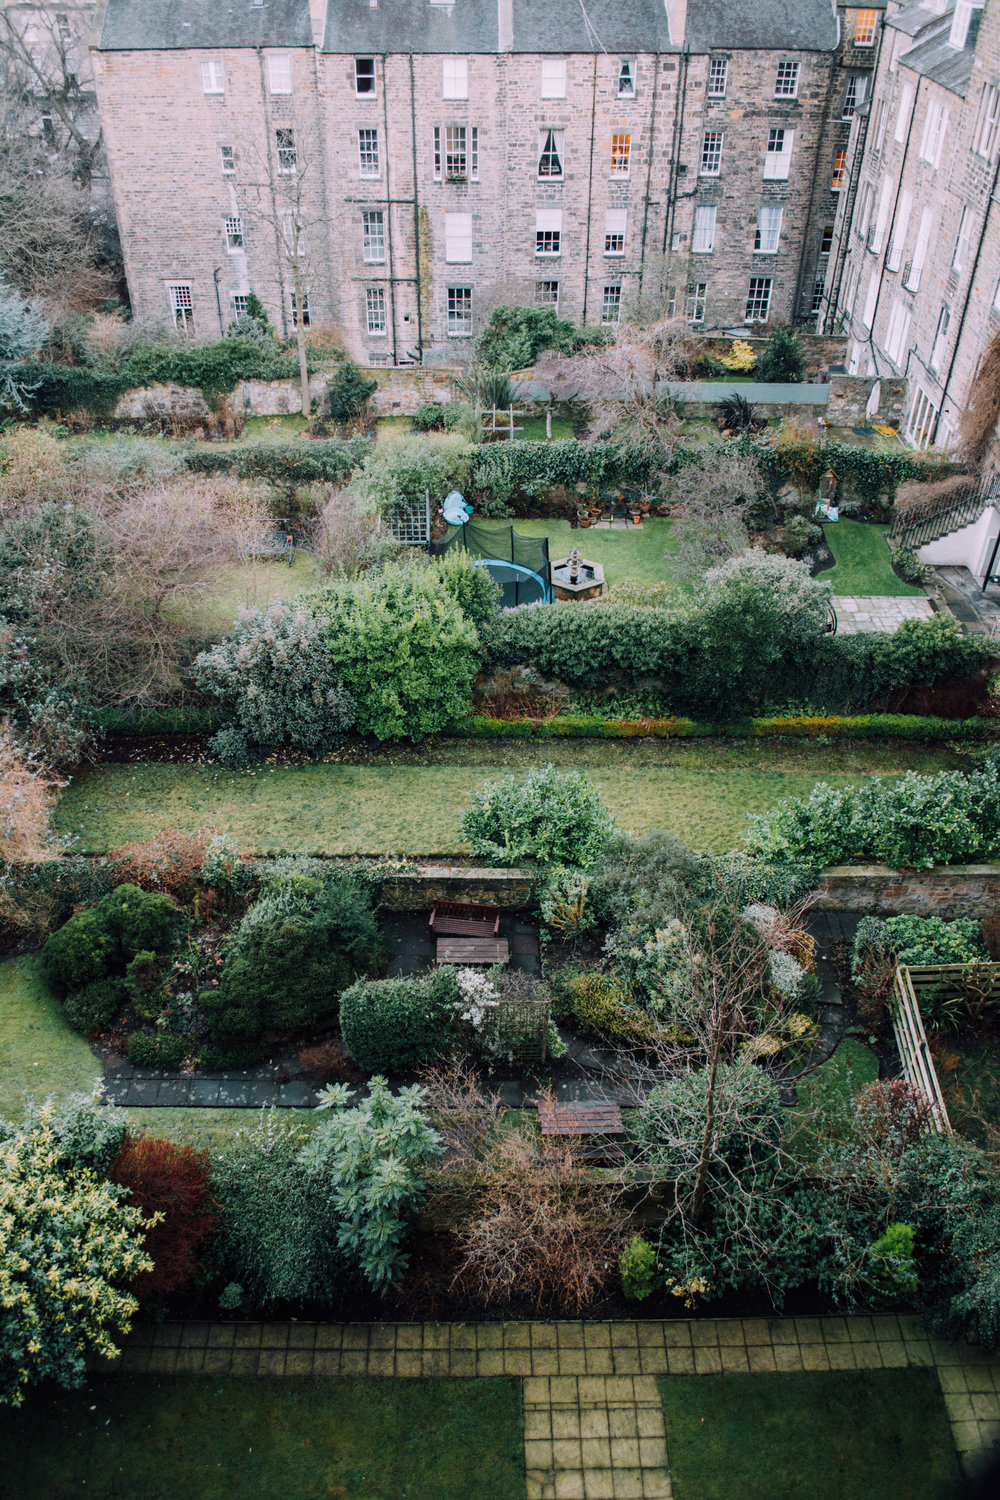 Why do backyards look so much more regal in Scotland? - Can I get an amen? This was the view from our apartment in Edinburgh. Every morning as the sun would rise, the colors on the buildings would shift from cooler tones to warm and inviting oranges and browns on the bricks. It was one of my very favorite things to witness on our visit to Scotland.